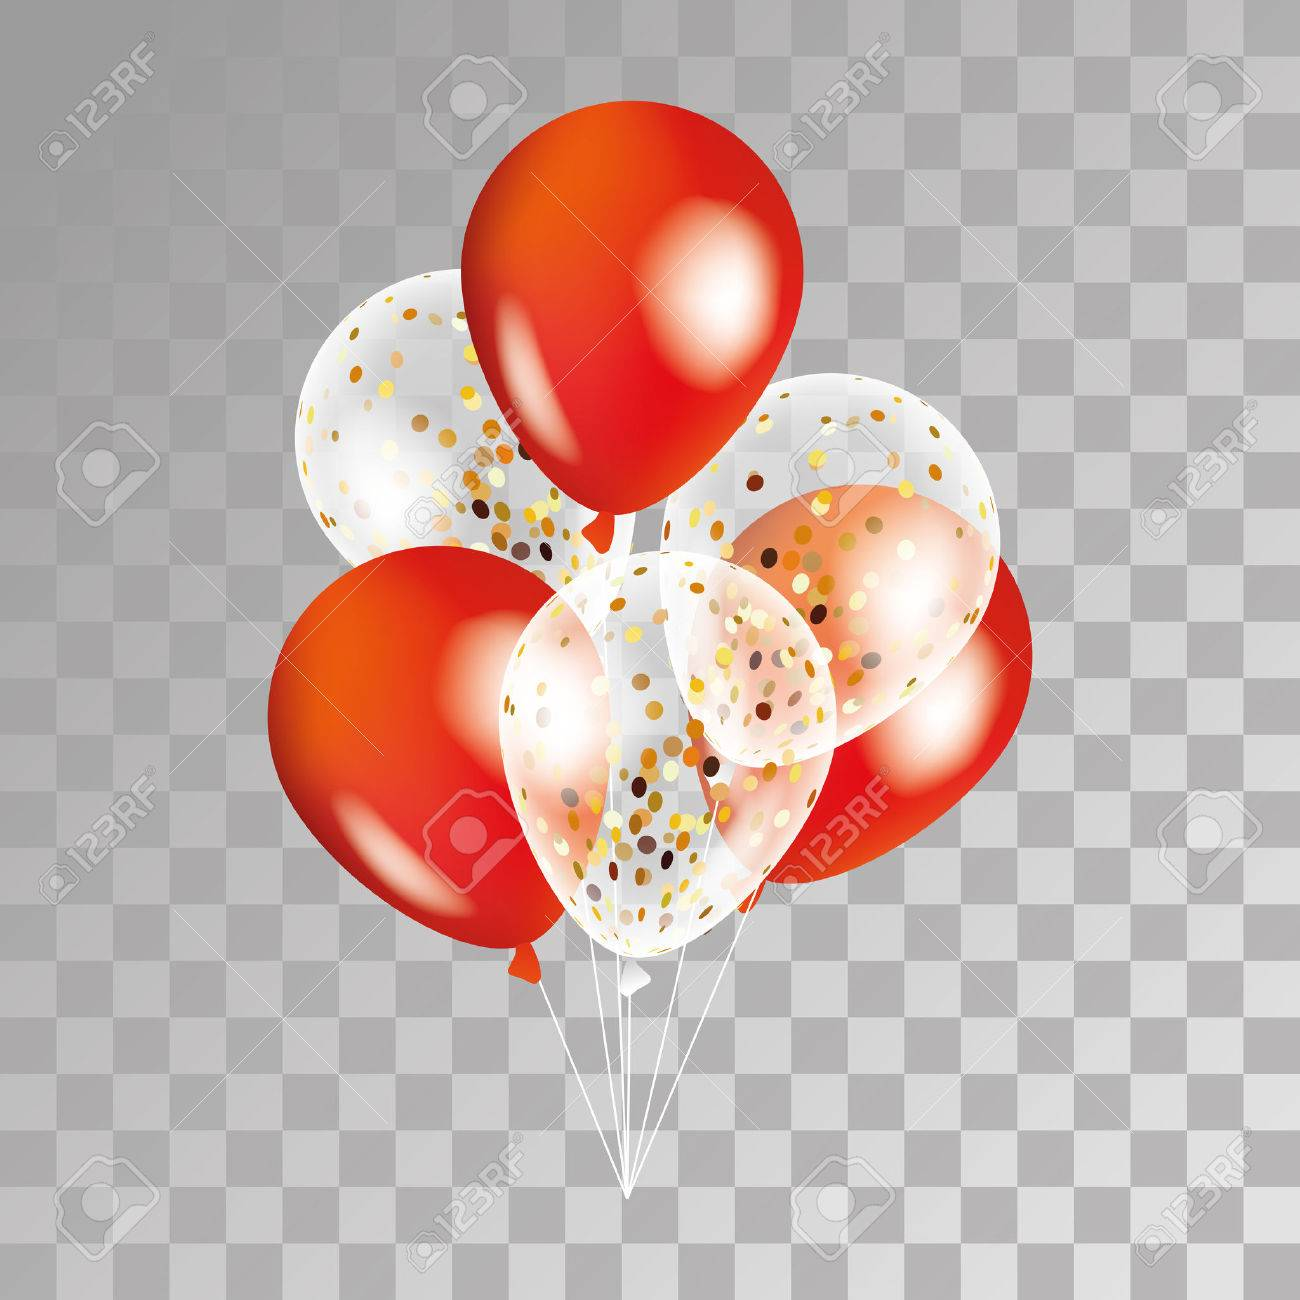 Gold and red transparent balloon on background. Party balloons for event design. Balloons isolated in the air. Party decorations for birthday, anniversary, celebration. Shine transparent balloon. - 67586890